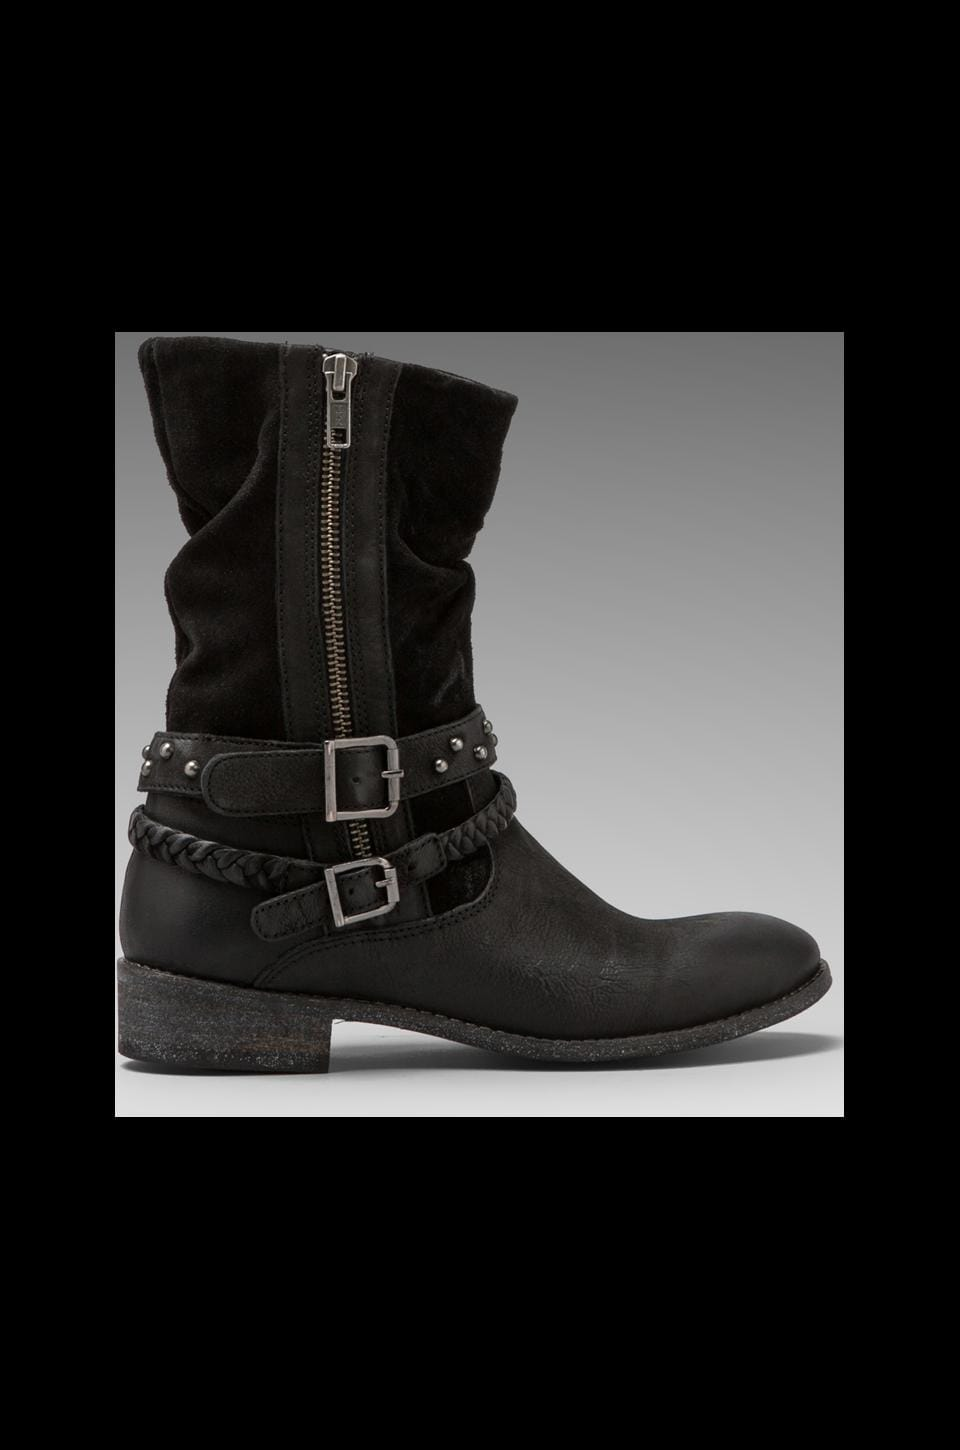 Matisse Outback Boot in Black